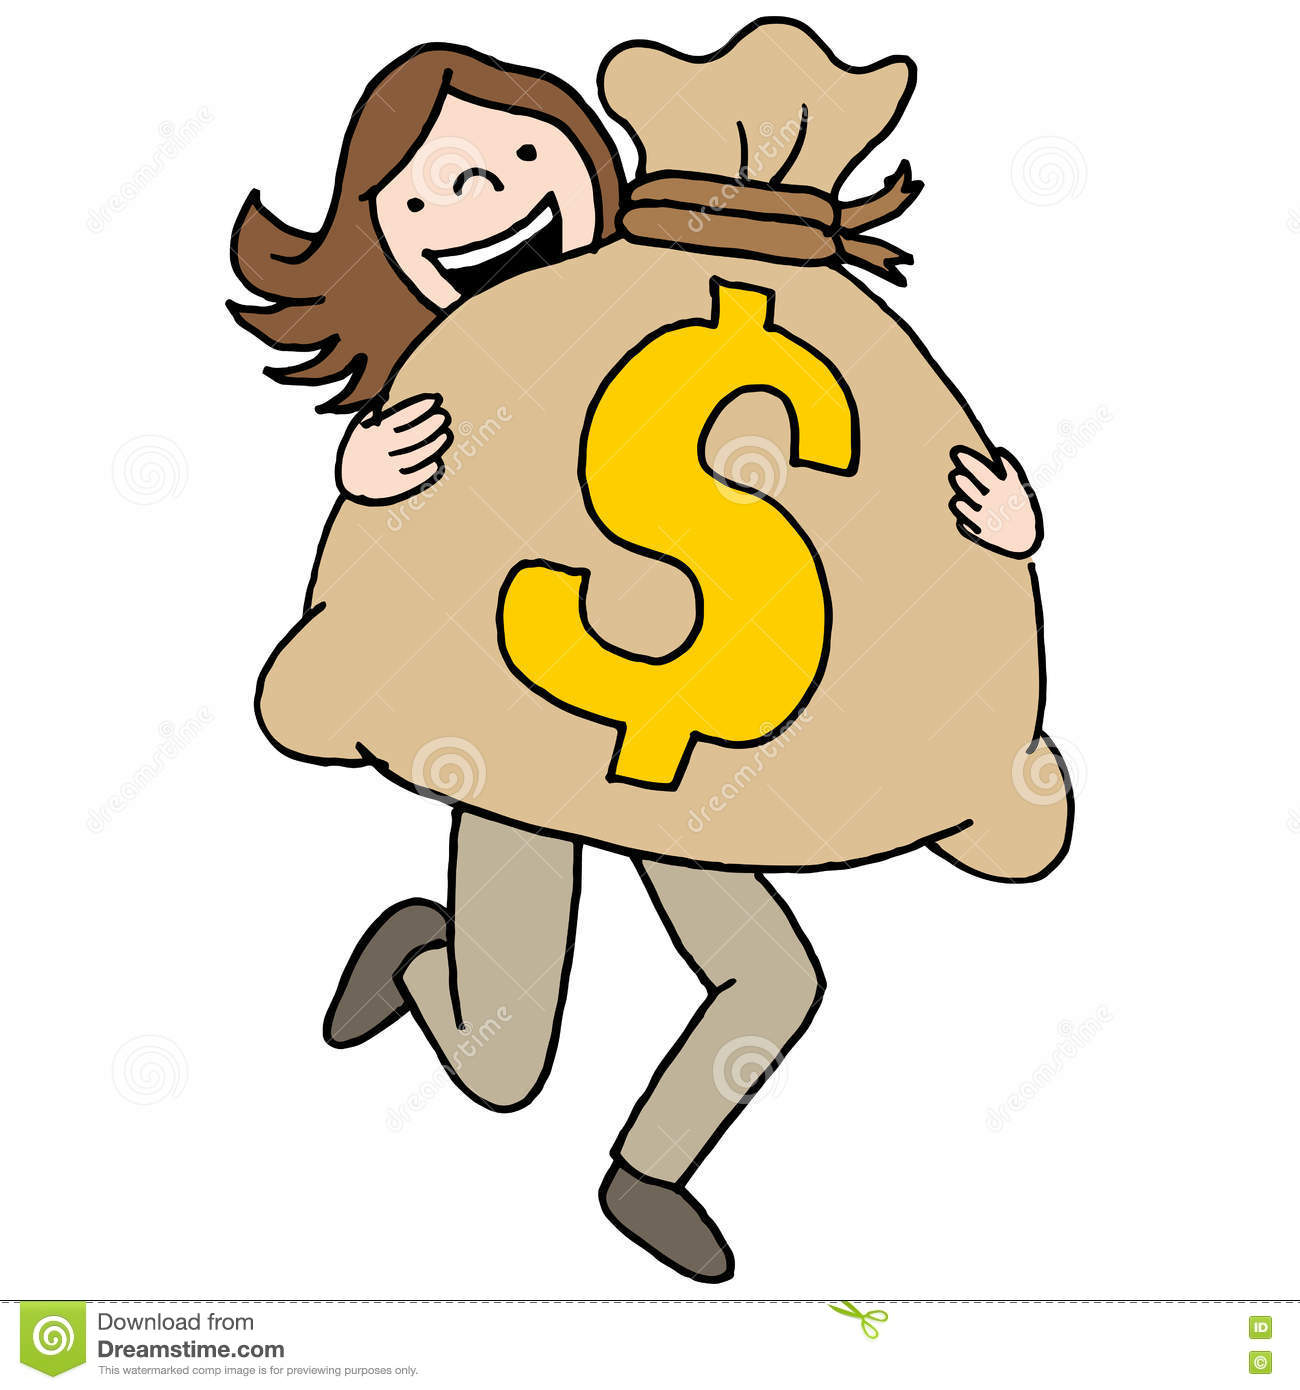 Bag With Money Sign Cartoon: Woman Carrying A Large Money Bag Stock Vector